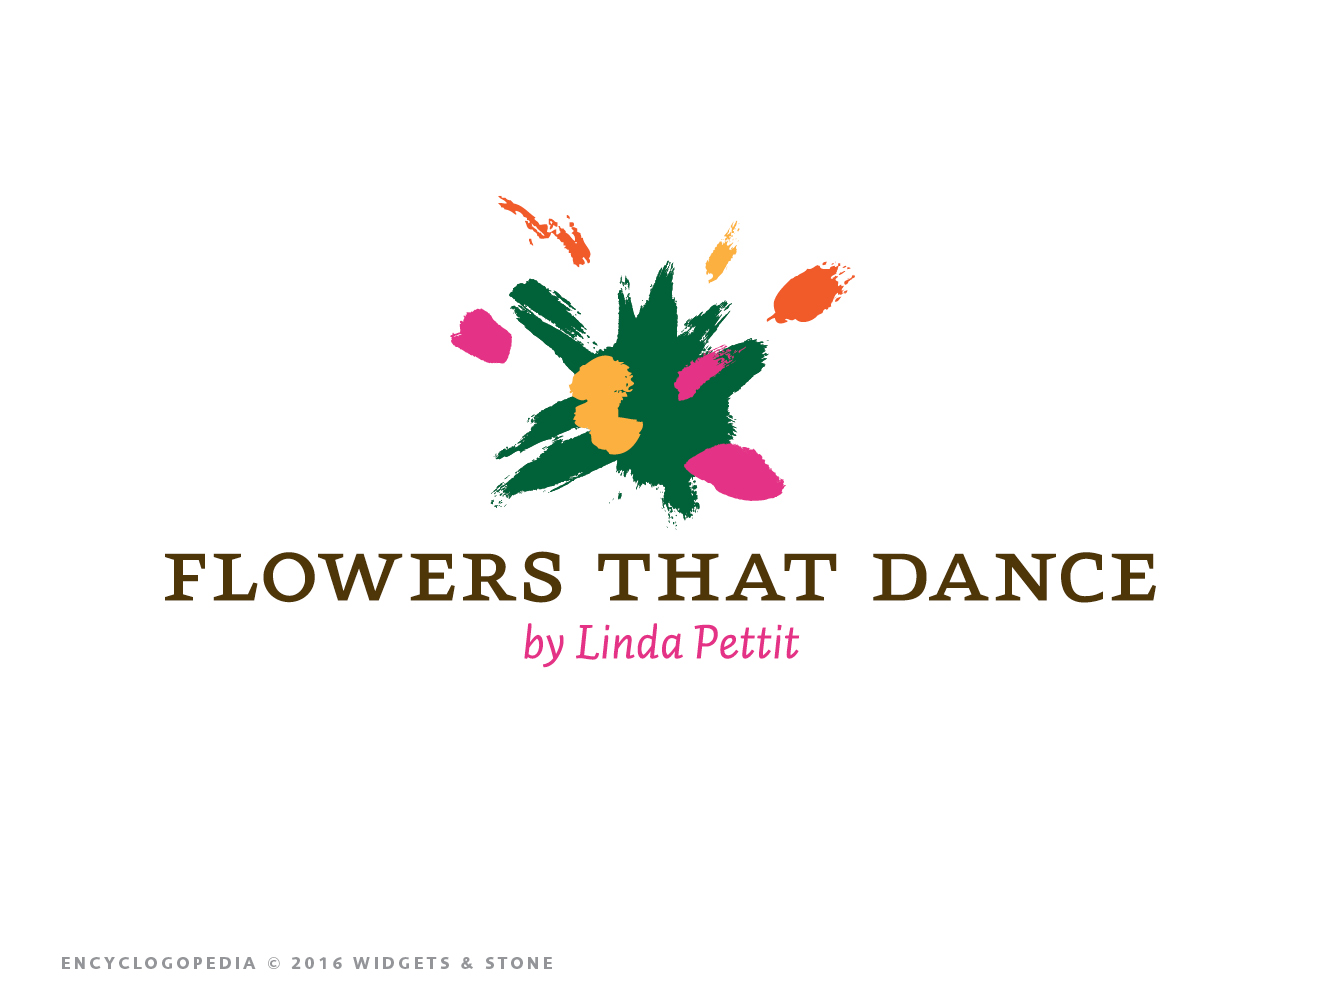 Copy of Flowers that dance logo mark design